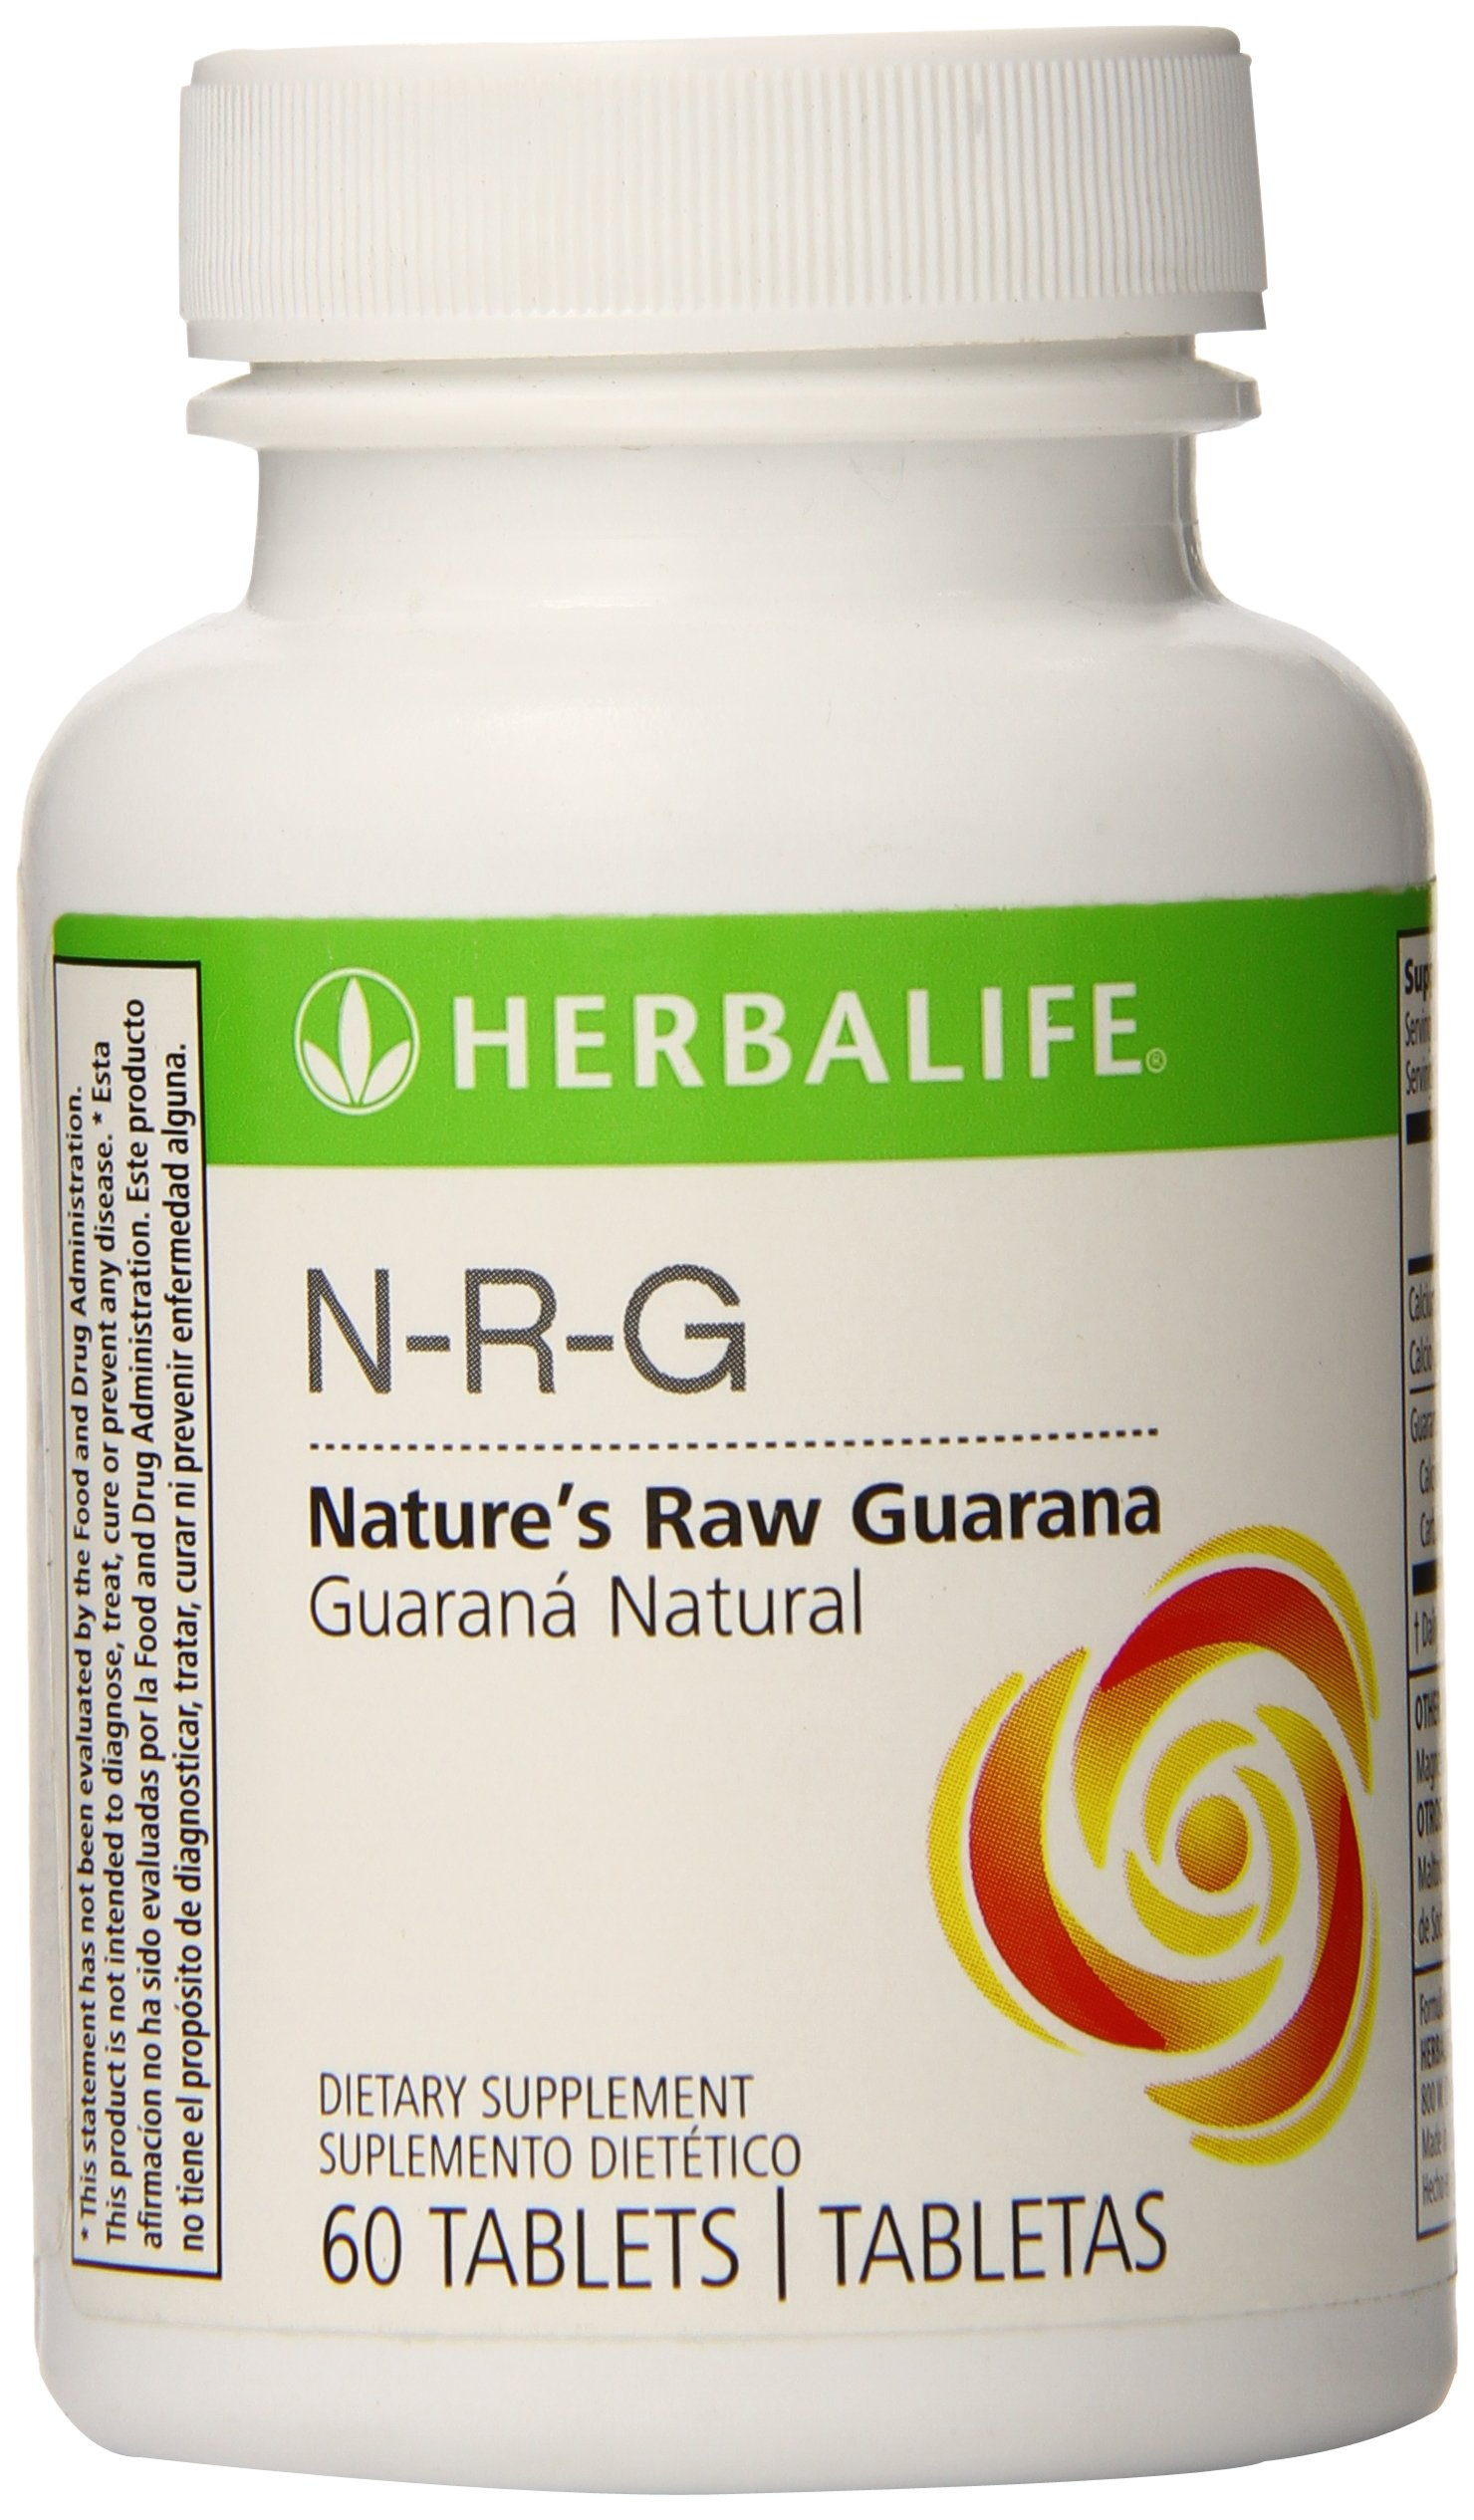 Herbalife N-R-G Nature's Raw Guarana Tablets, 60 Tablets